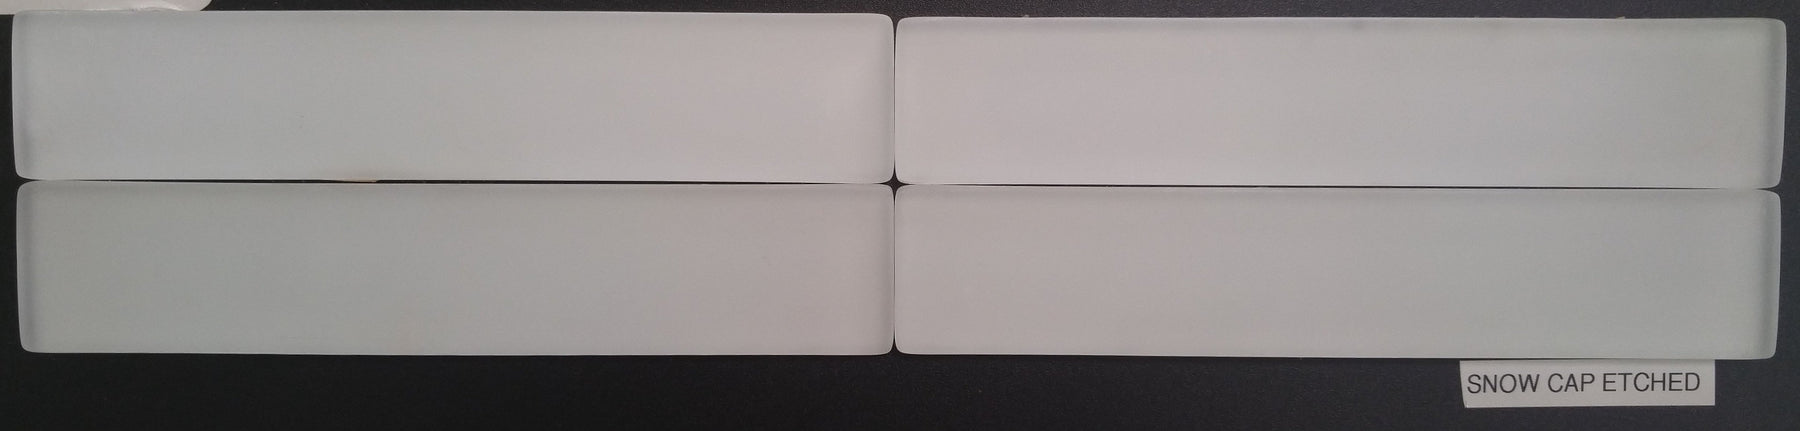 "Snow Cap Glass Tile - 1.6"" x 8.5"" x 3/8"" Etched"